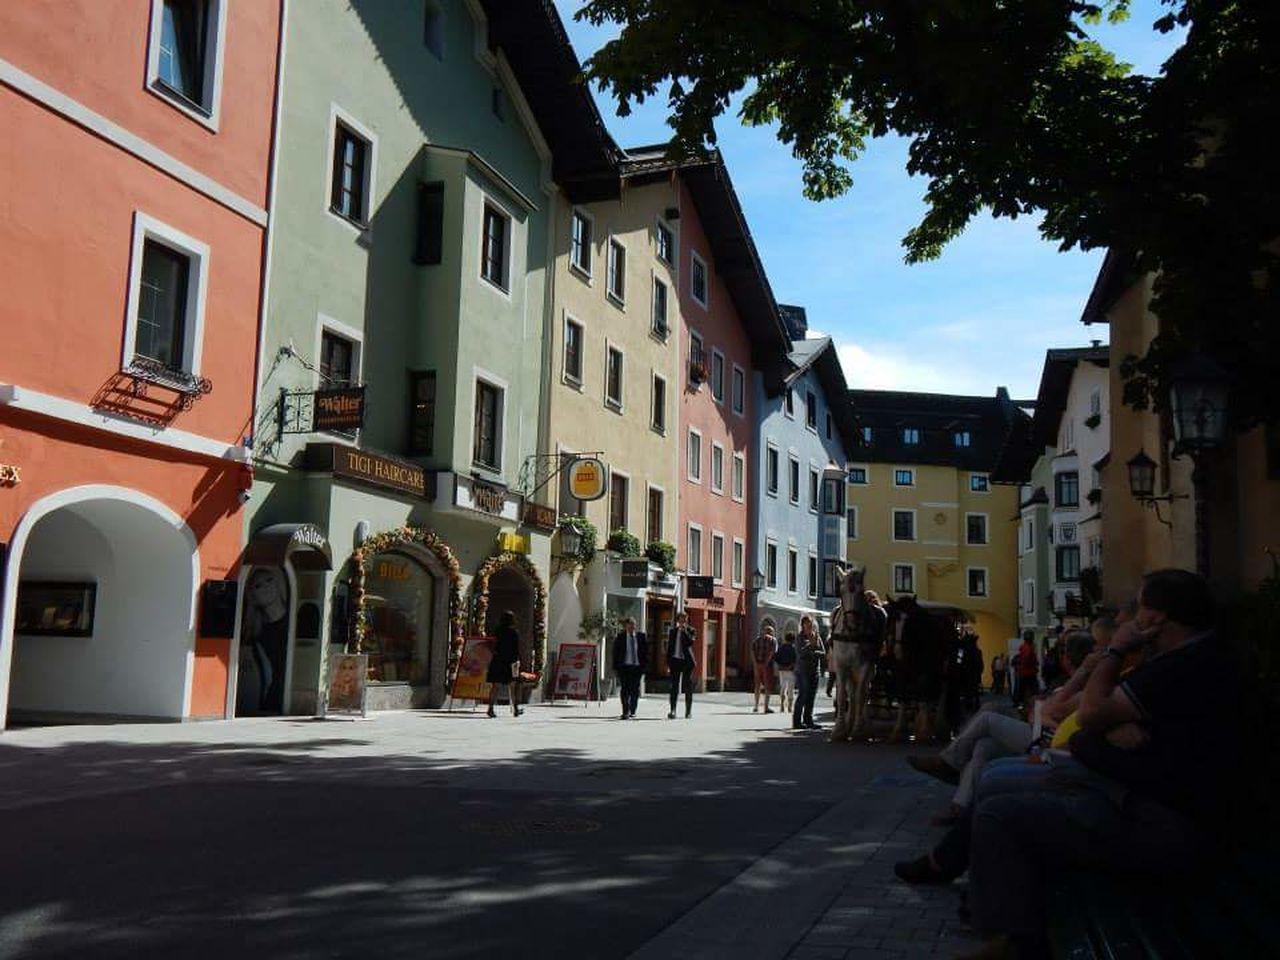 Street Building Exterior Architecture Built Structure Backgrounds Scenics Travel Destinations Colourful Places Pastels. Austria Beautiful Towns People Watching